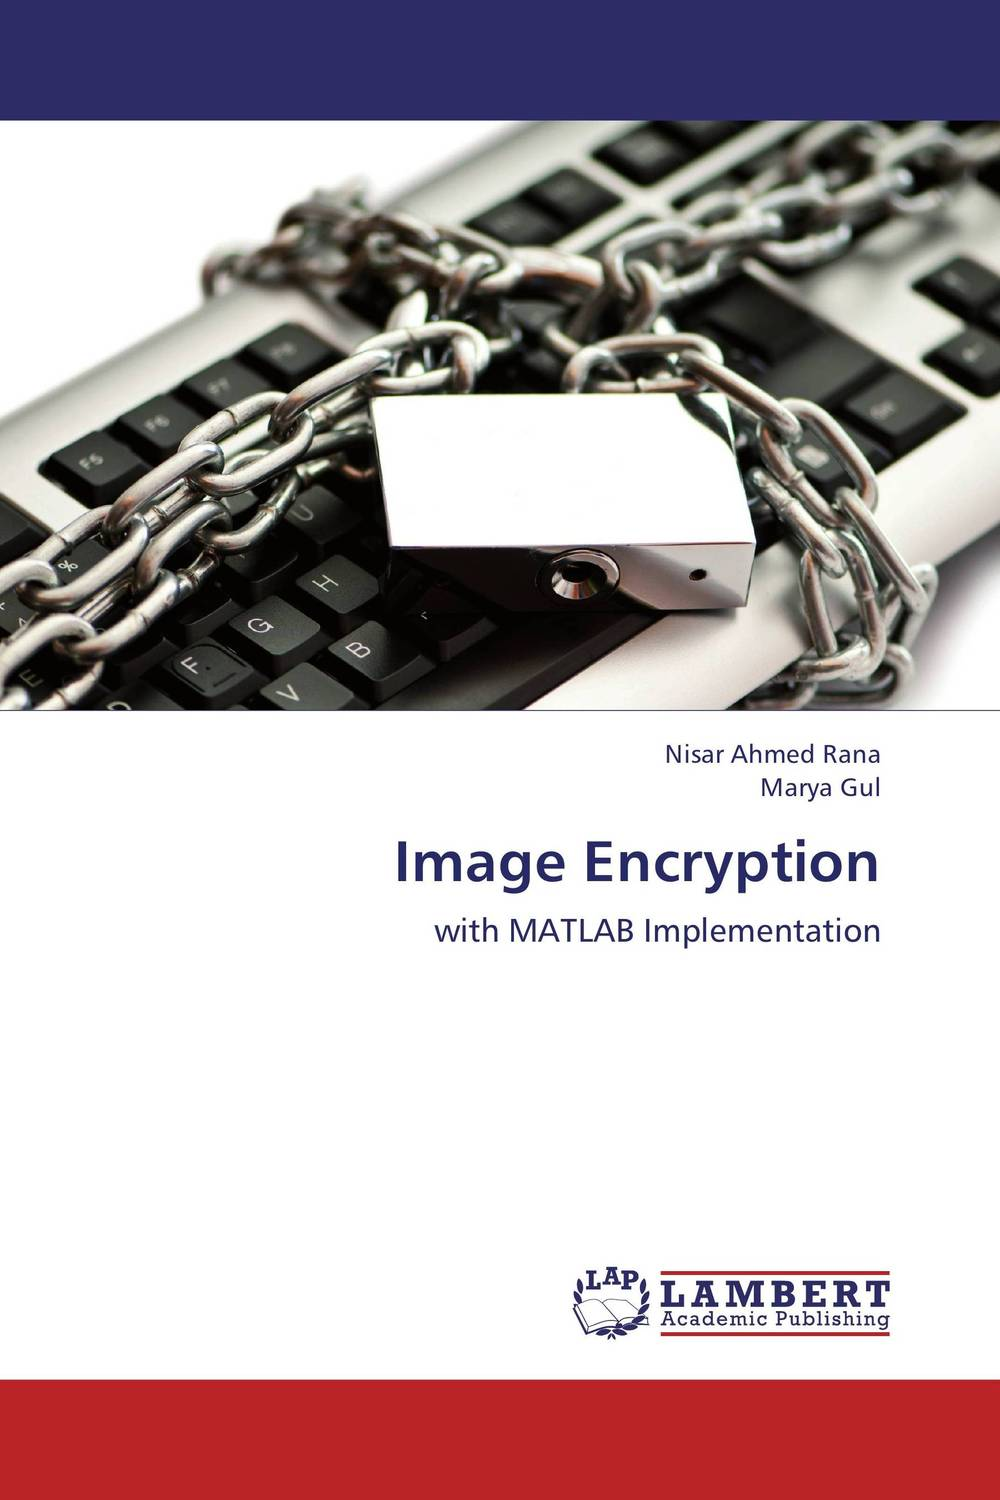 Image Encryption belousov a security features of banknotes and other documents methods of authentication manual денежные билеты бланки ценных бумаг и документов